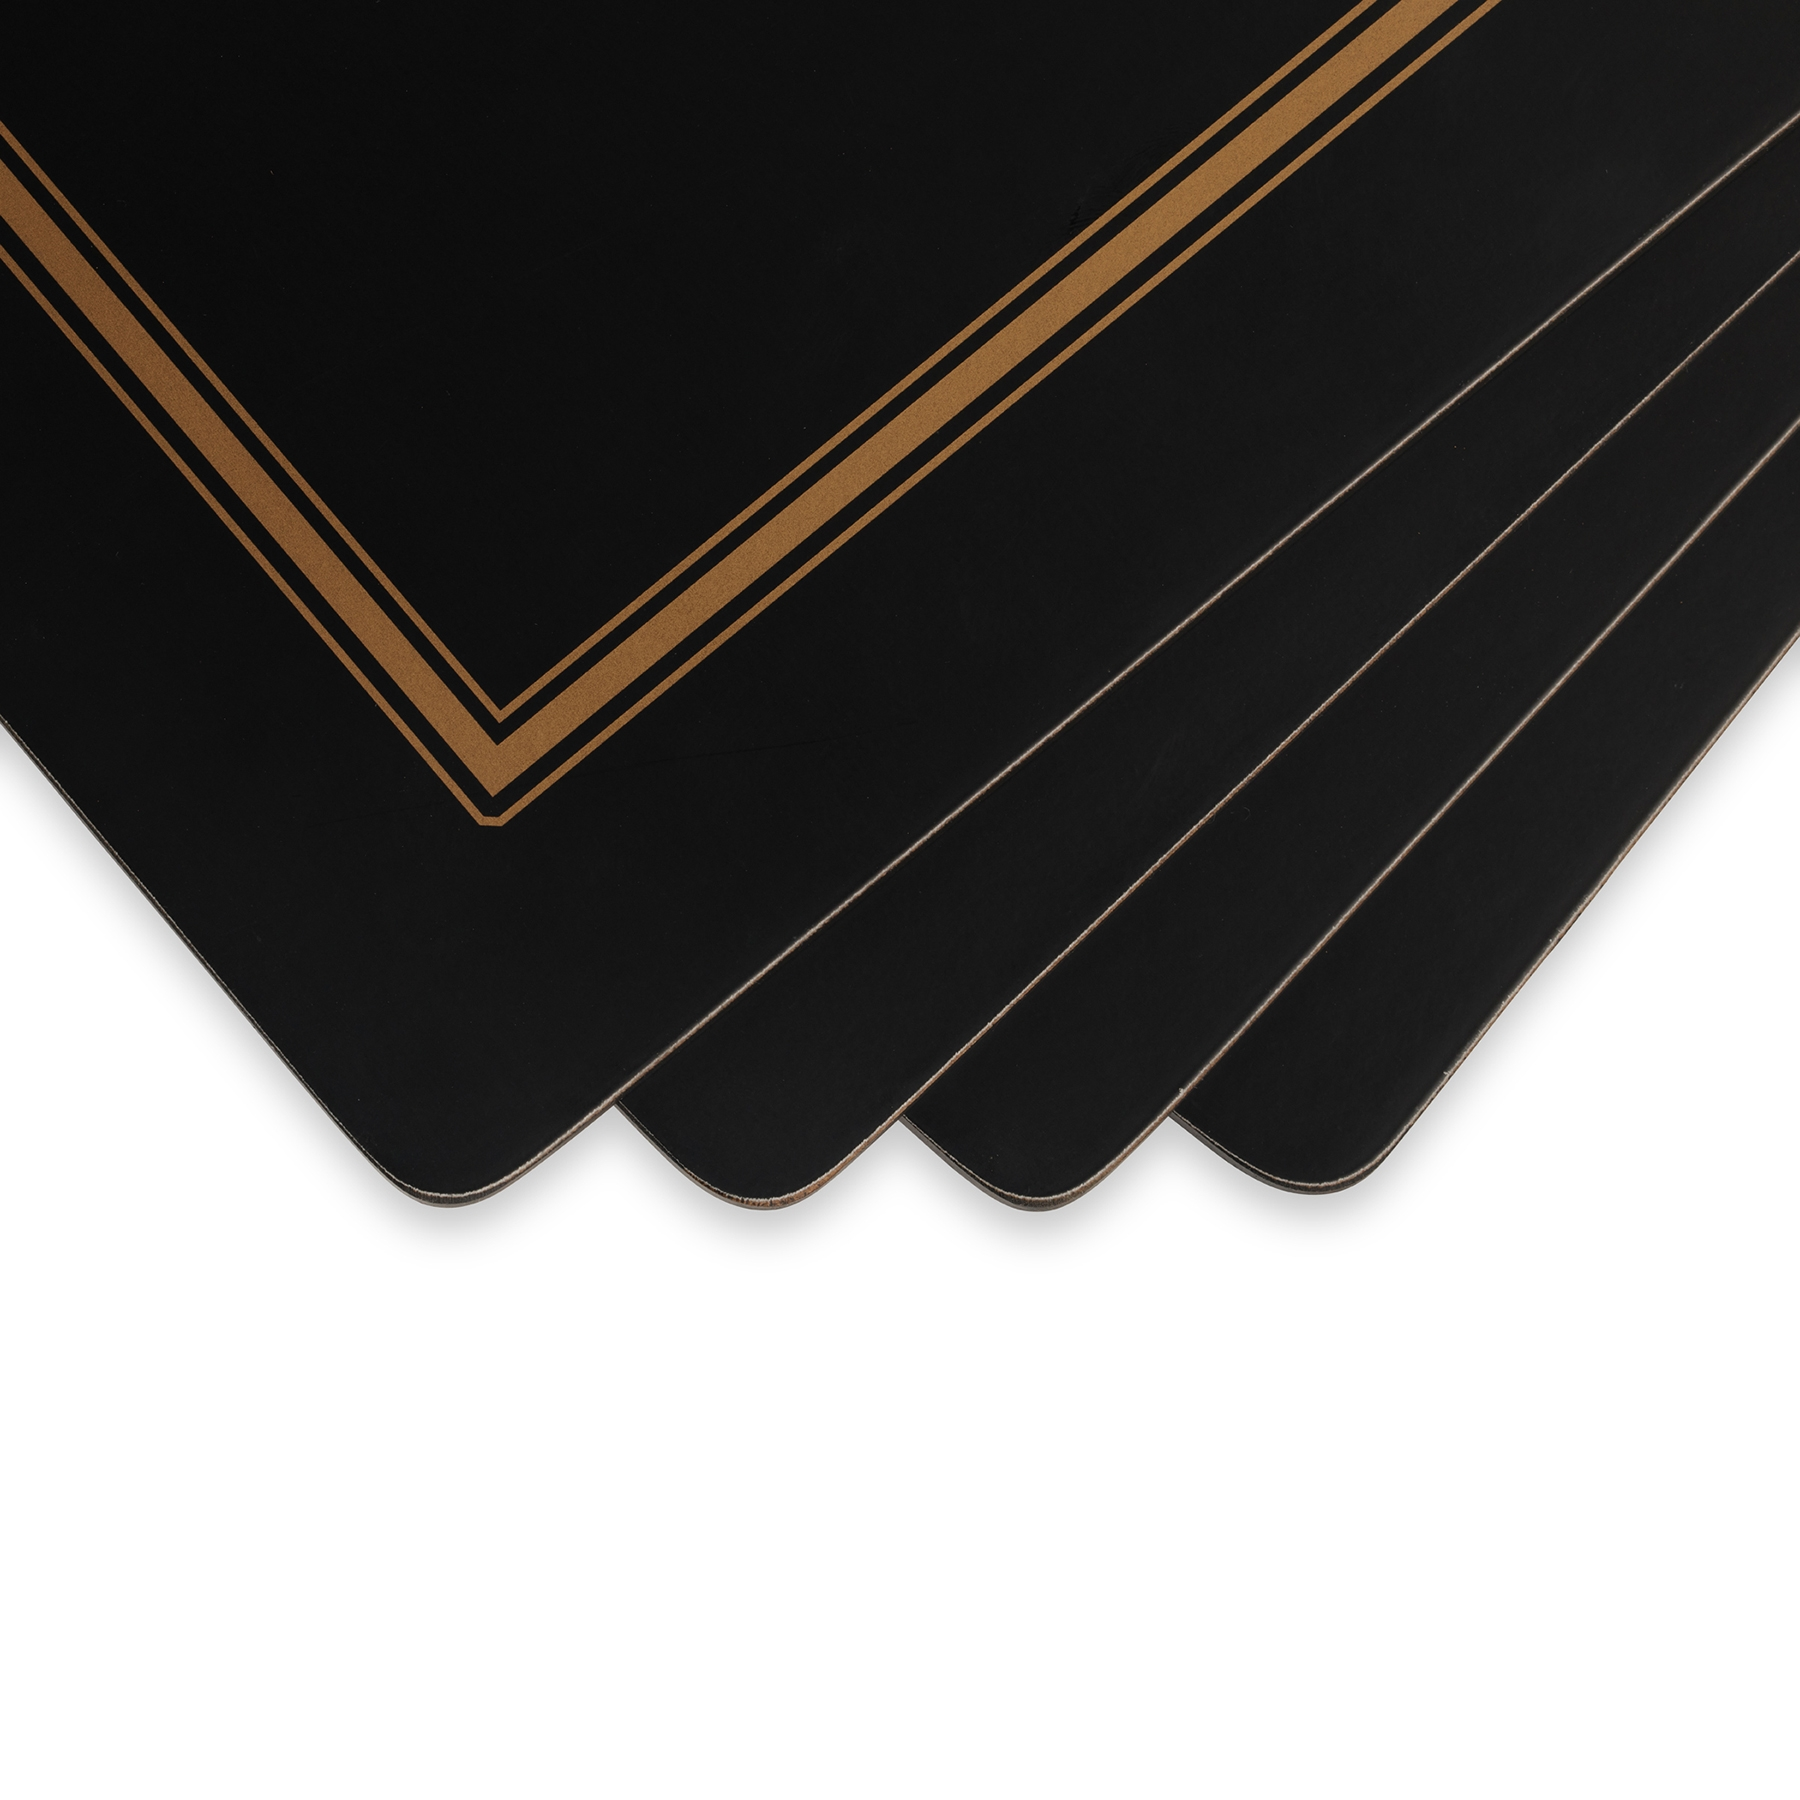 Pimpernel Classic Black Placemats Set of 4 image number 2